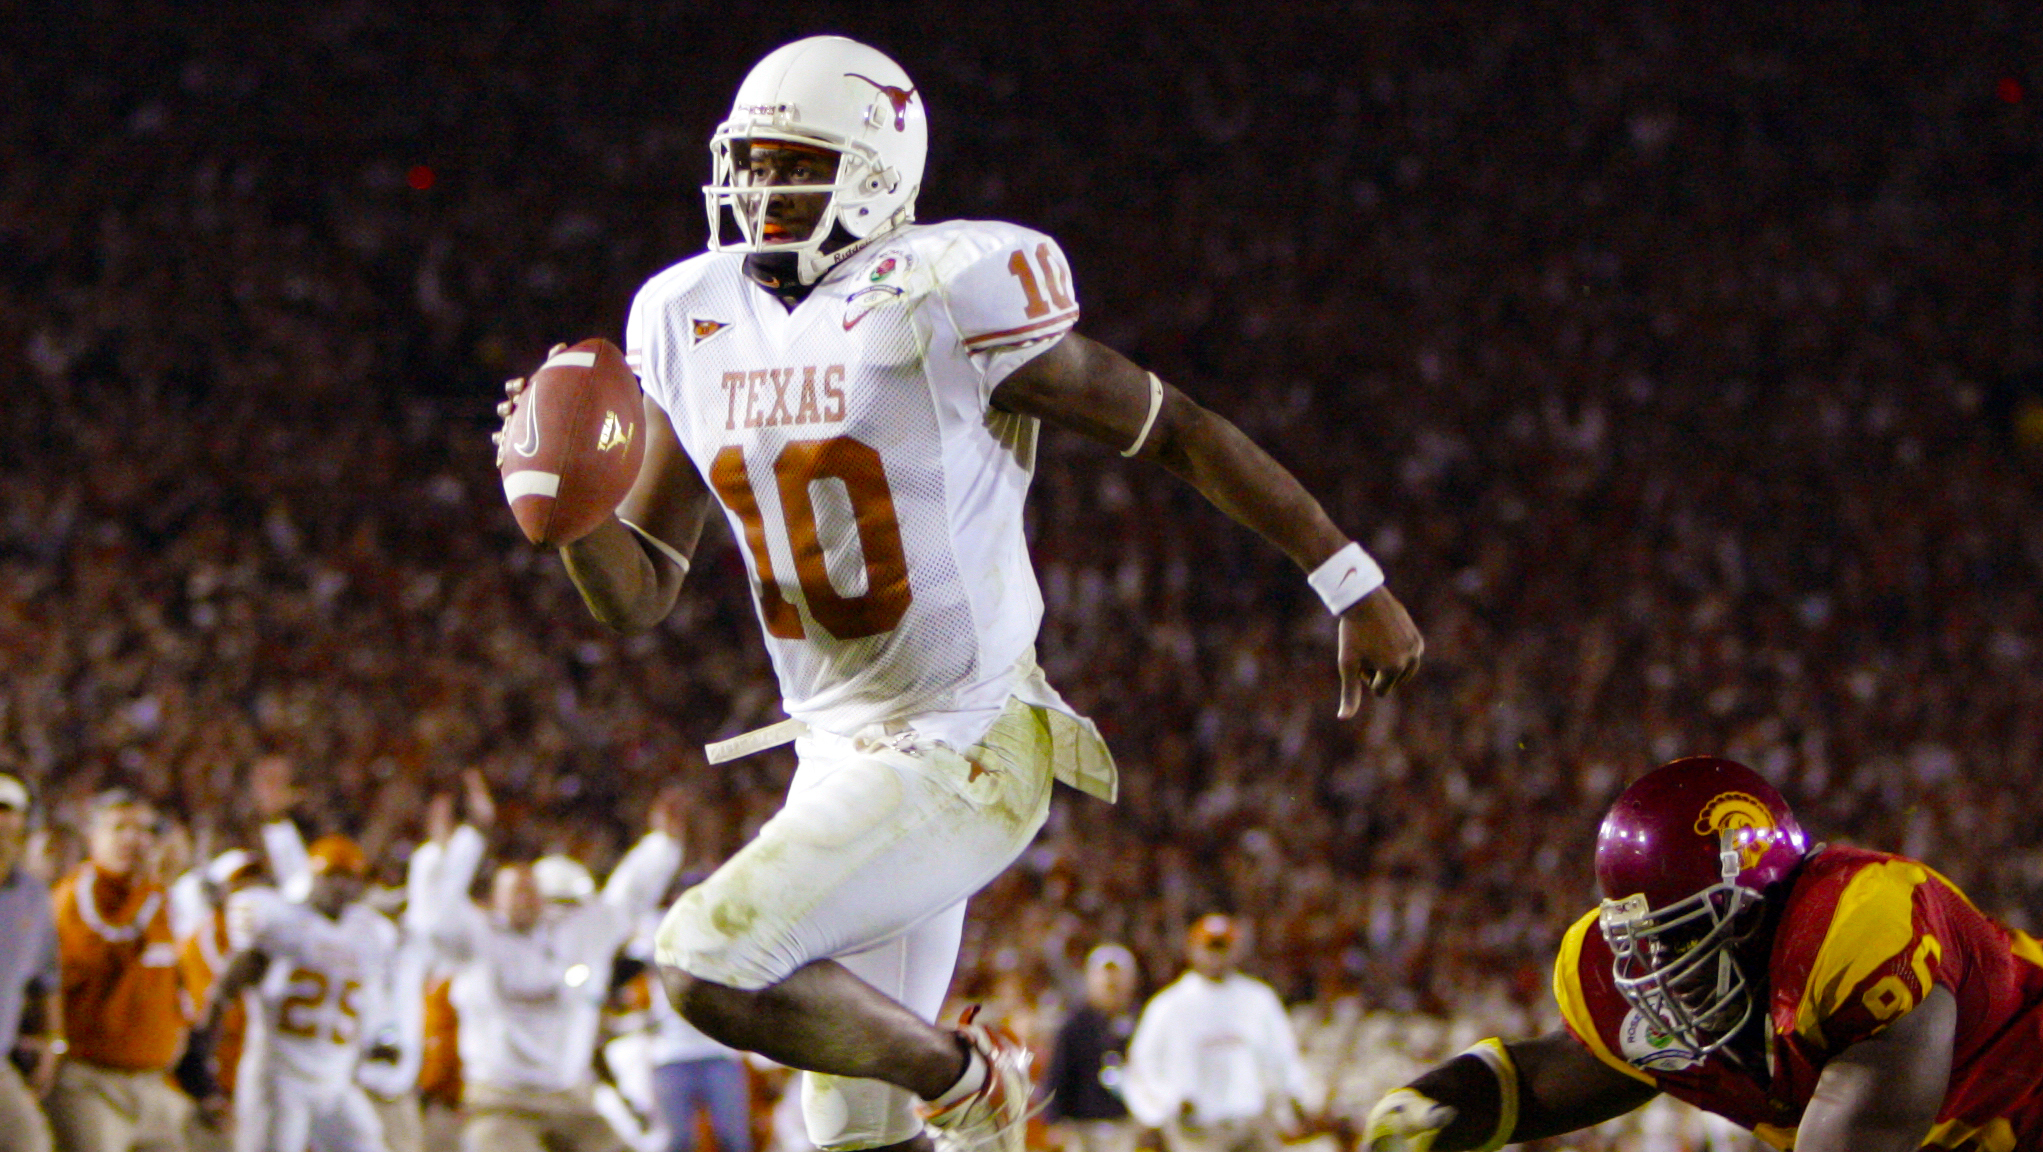 Former NFL QB Vince Young joins CFL, hopes for a comeback